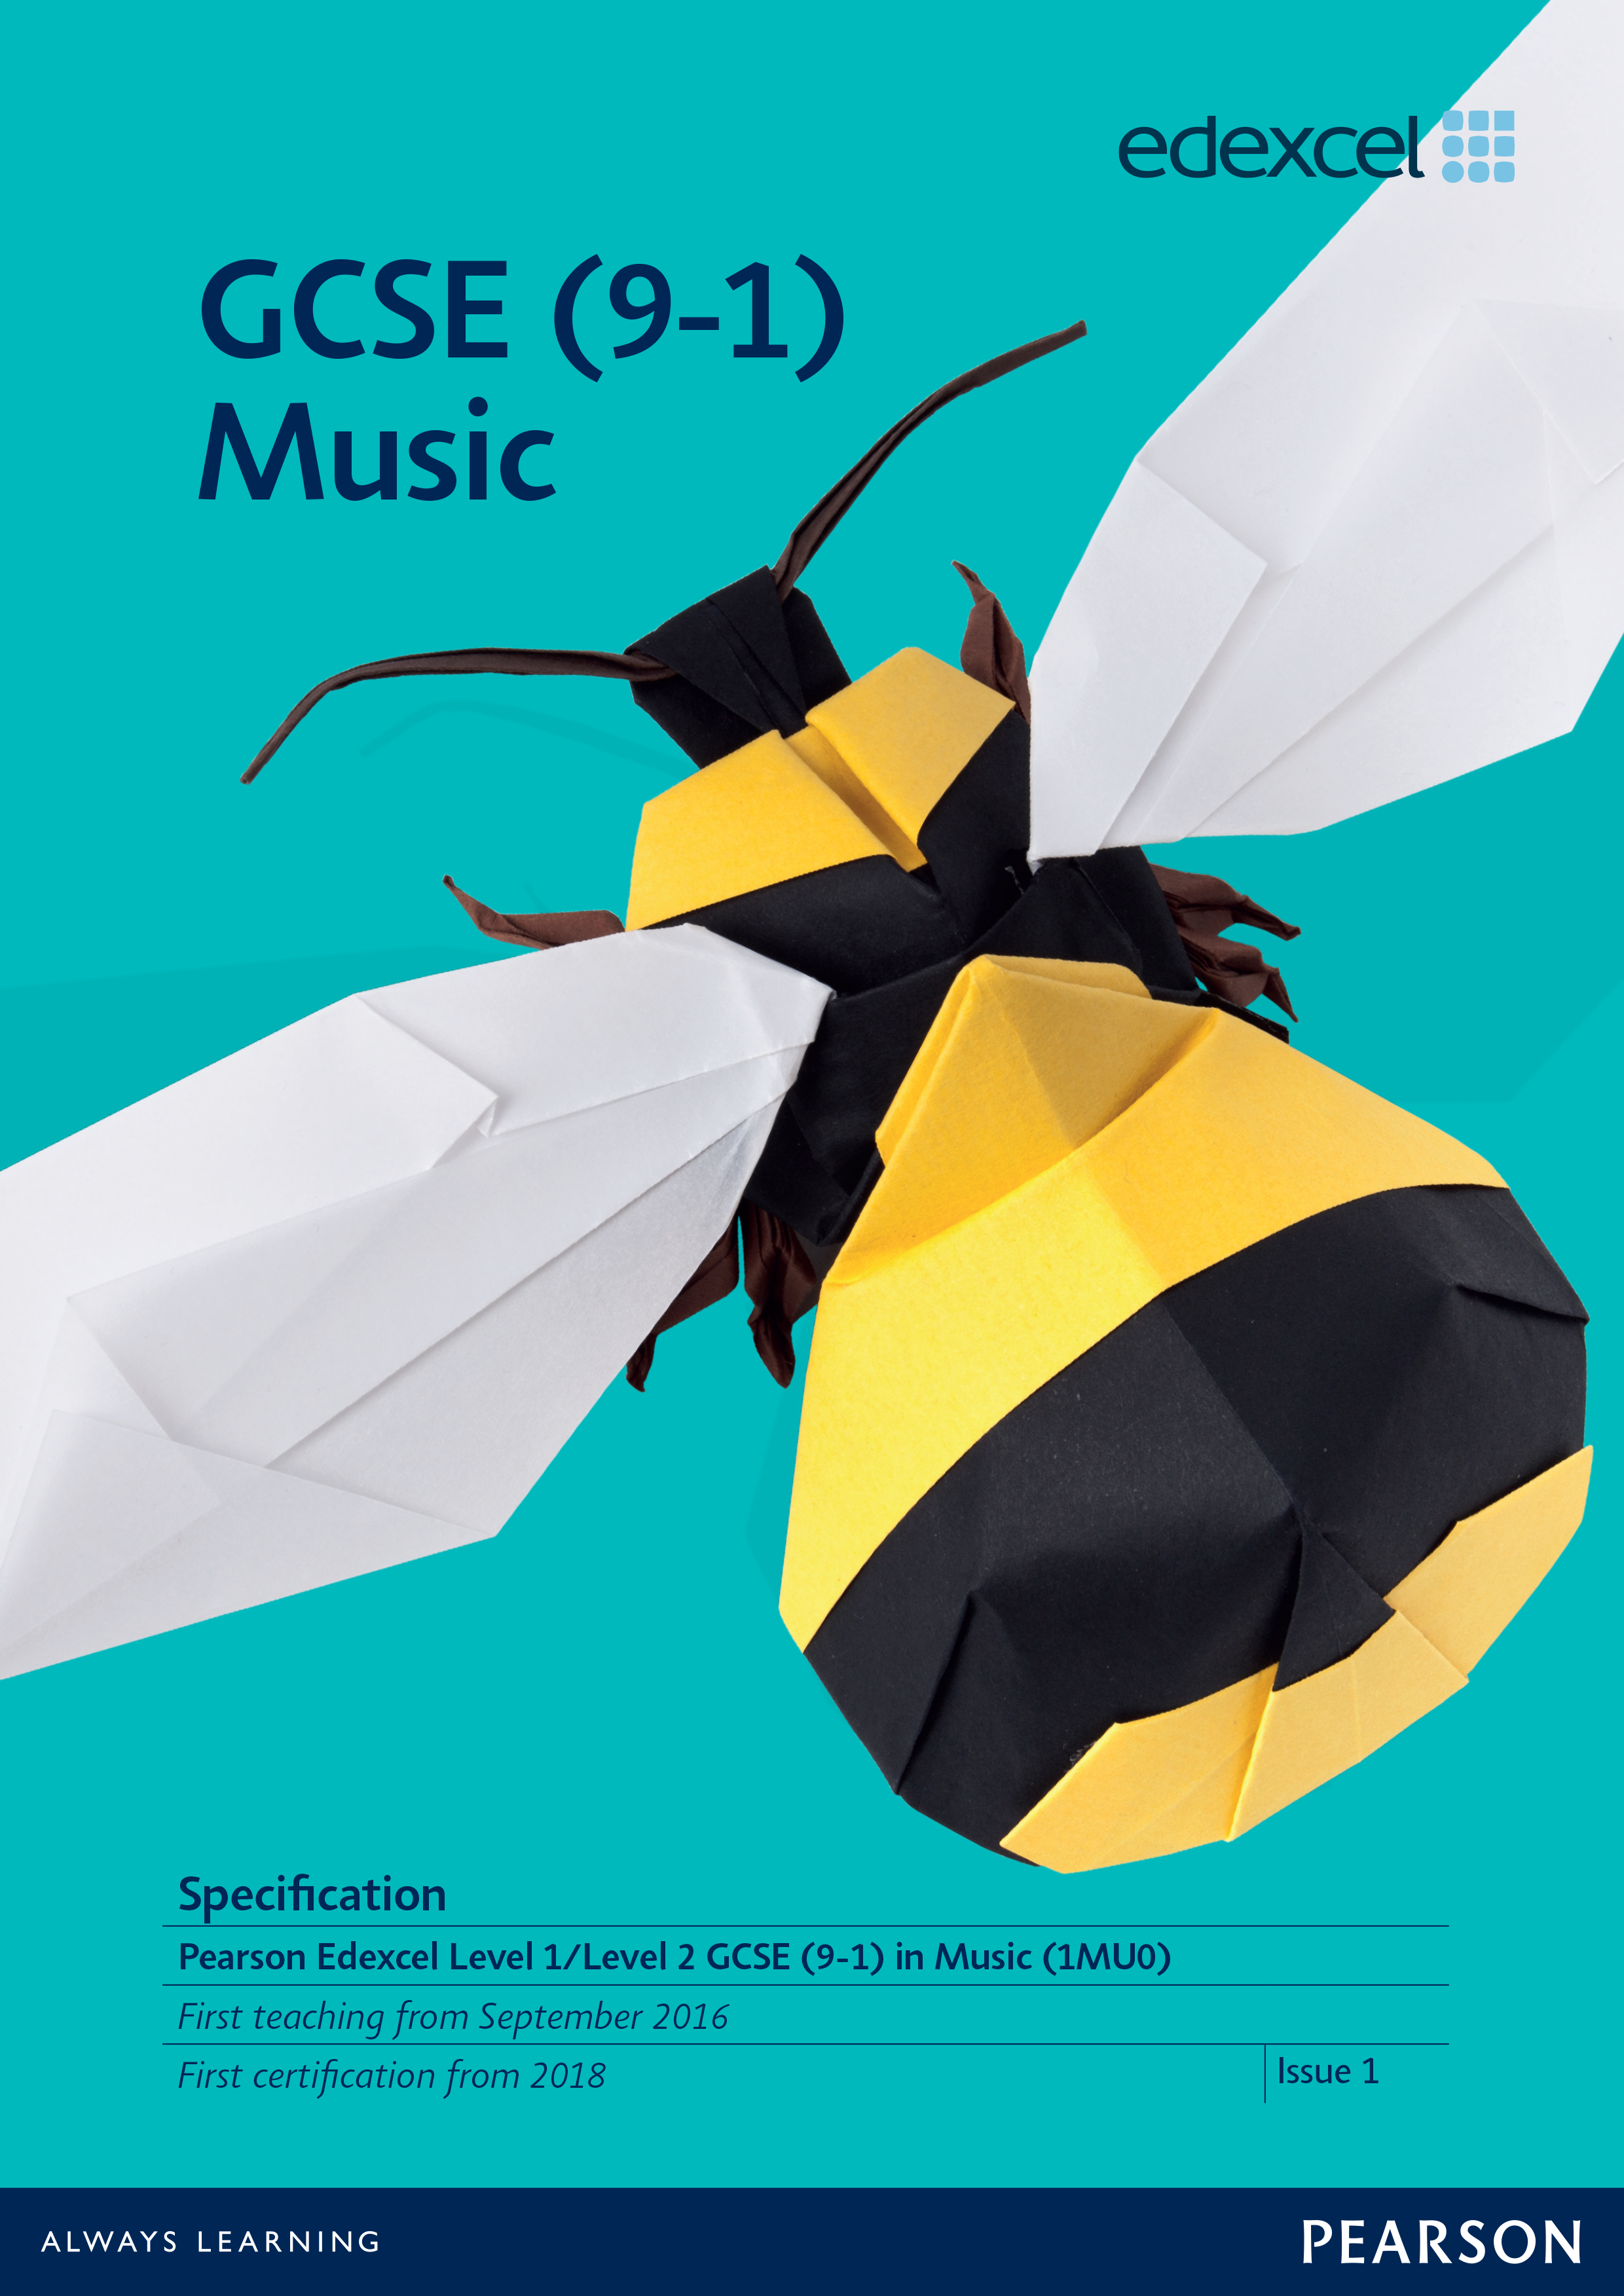 Link to Edexcel GCSE Music (2016) specification page